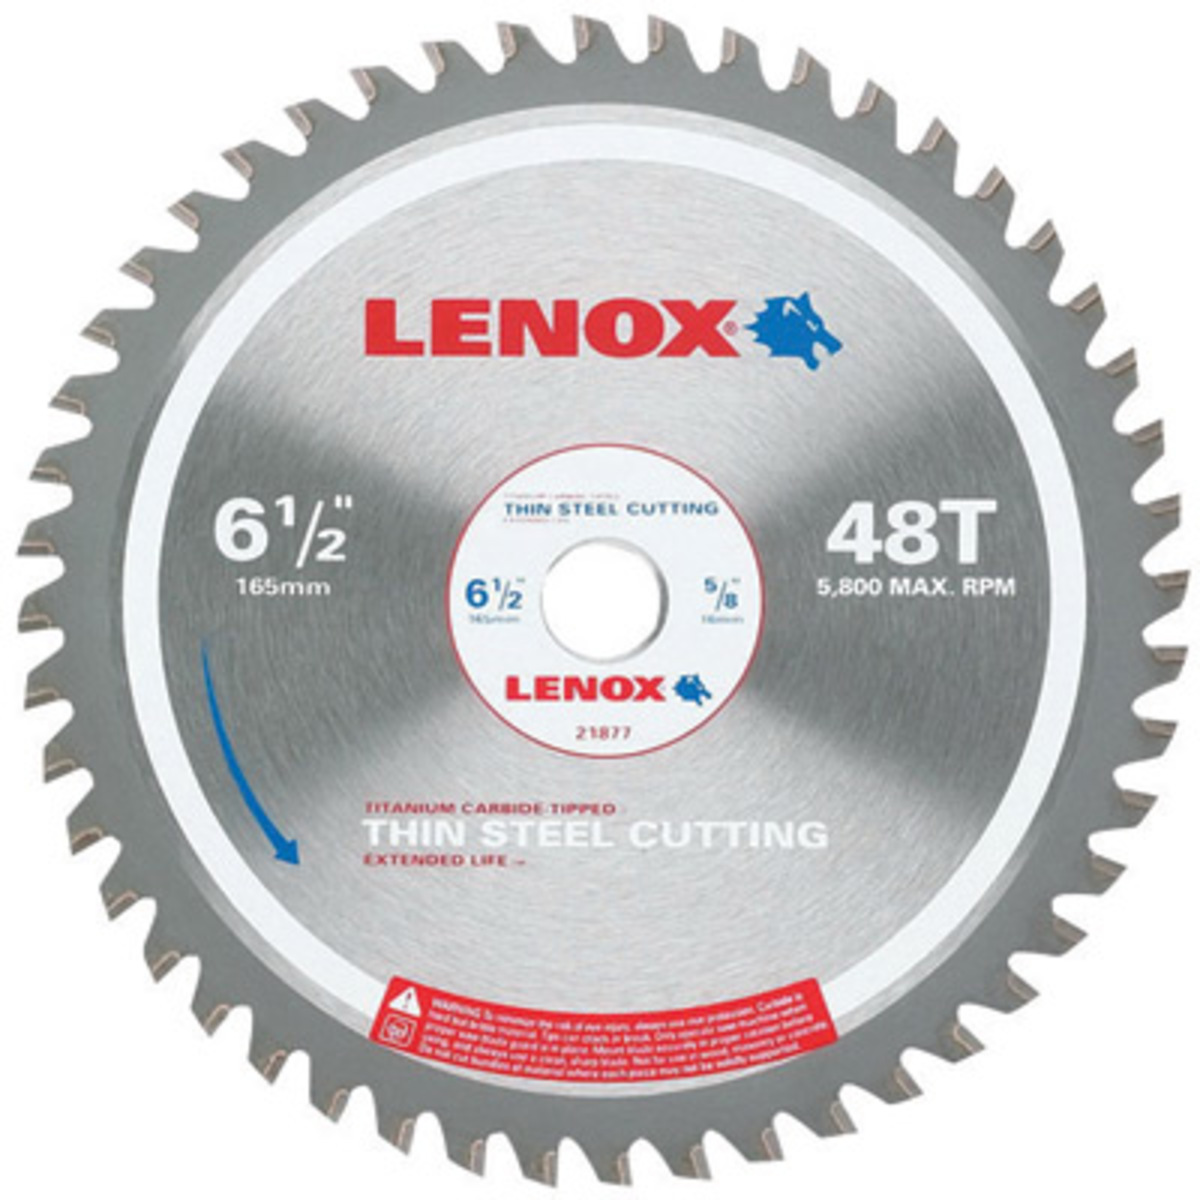 Airgas amt21887 lenox 10 x 58 5200 rpm 80 teeth extended lenox 10 greentooth Gallery